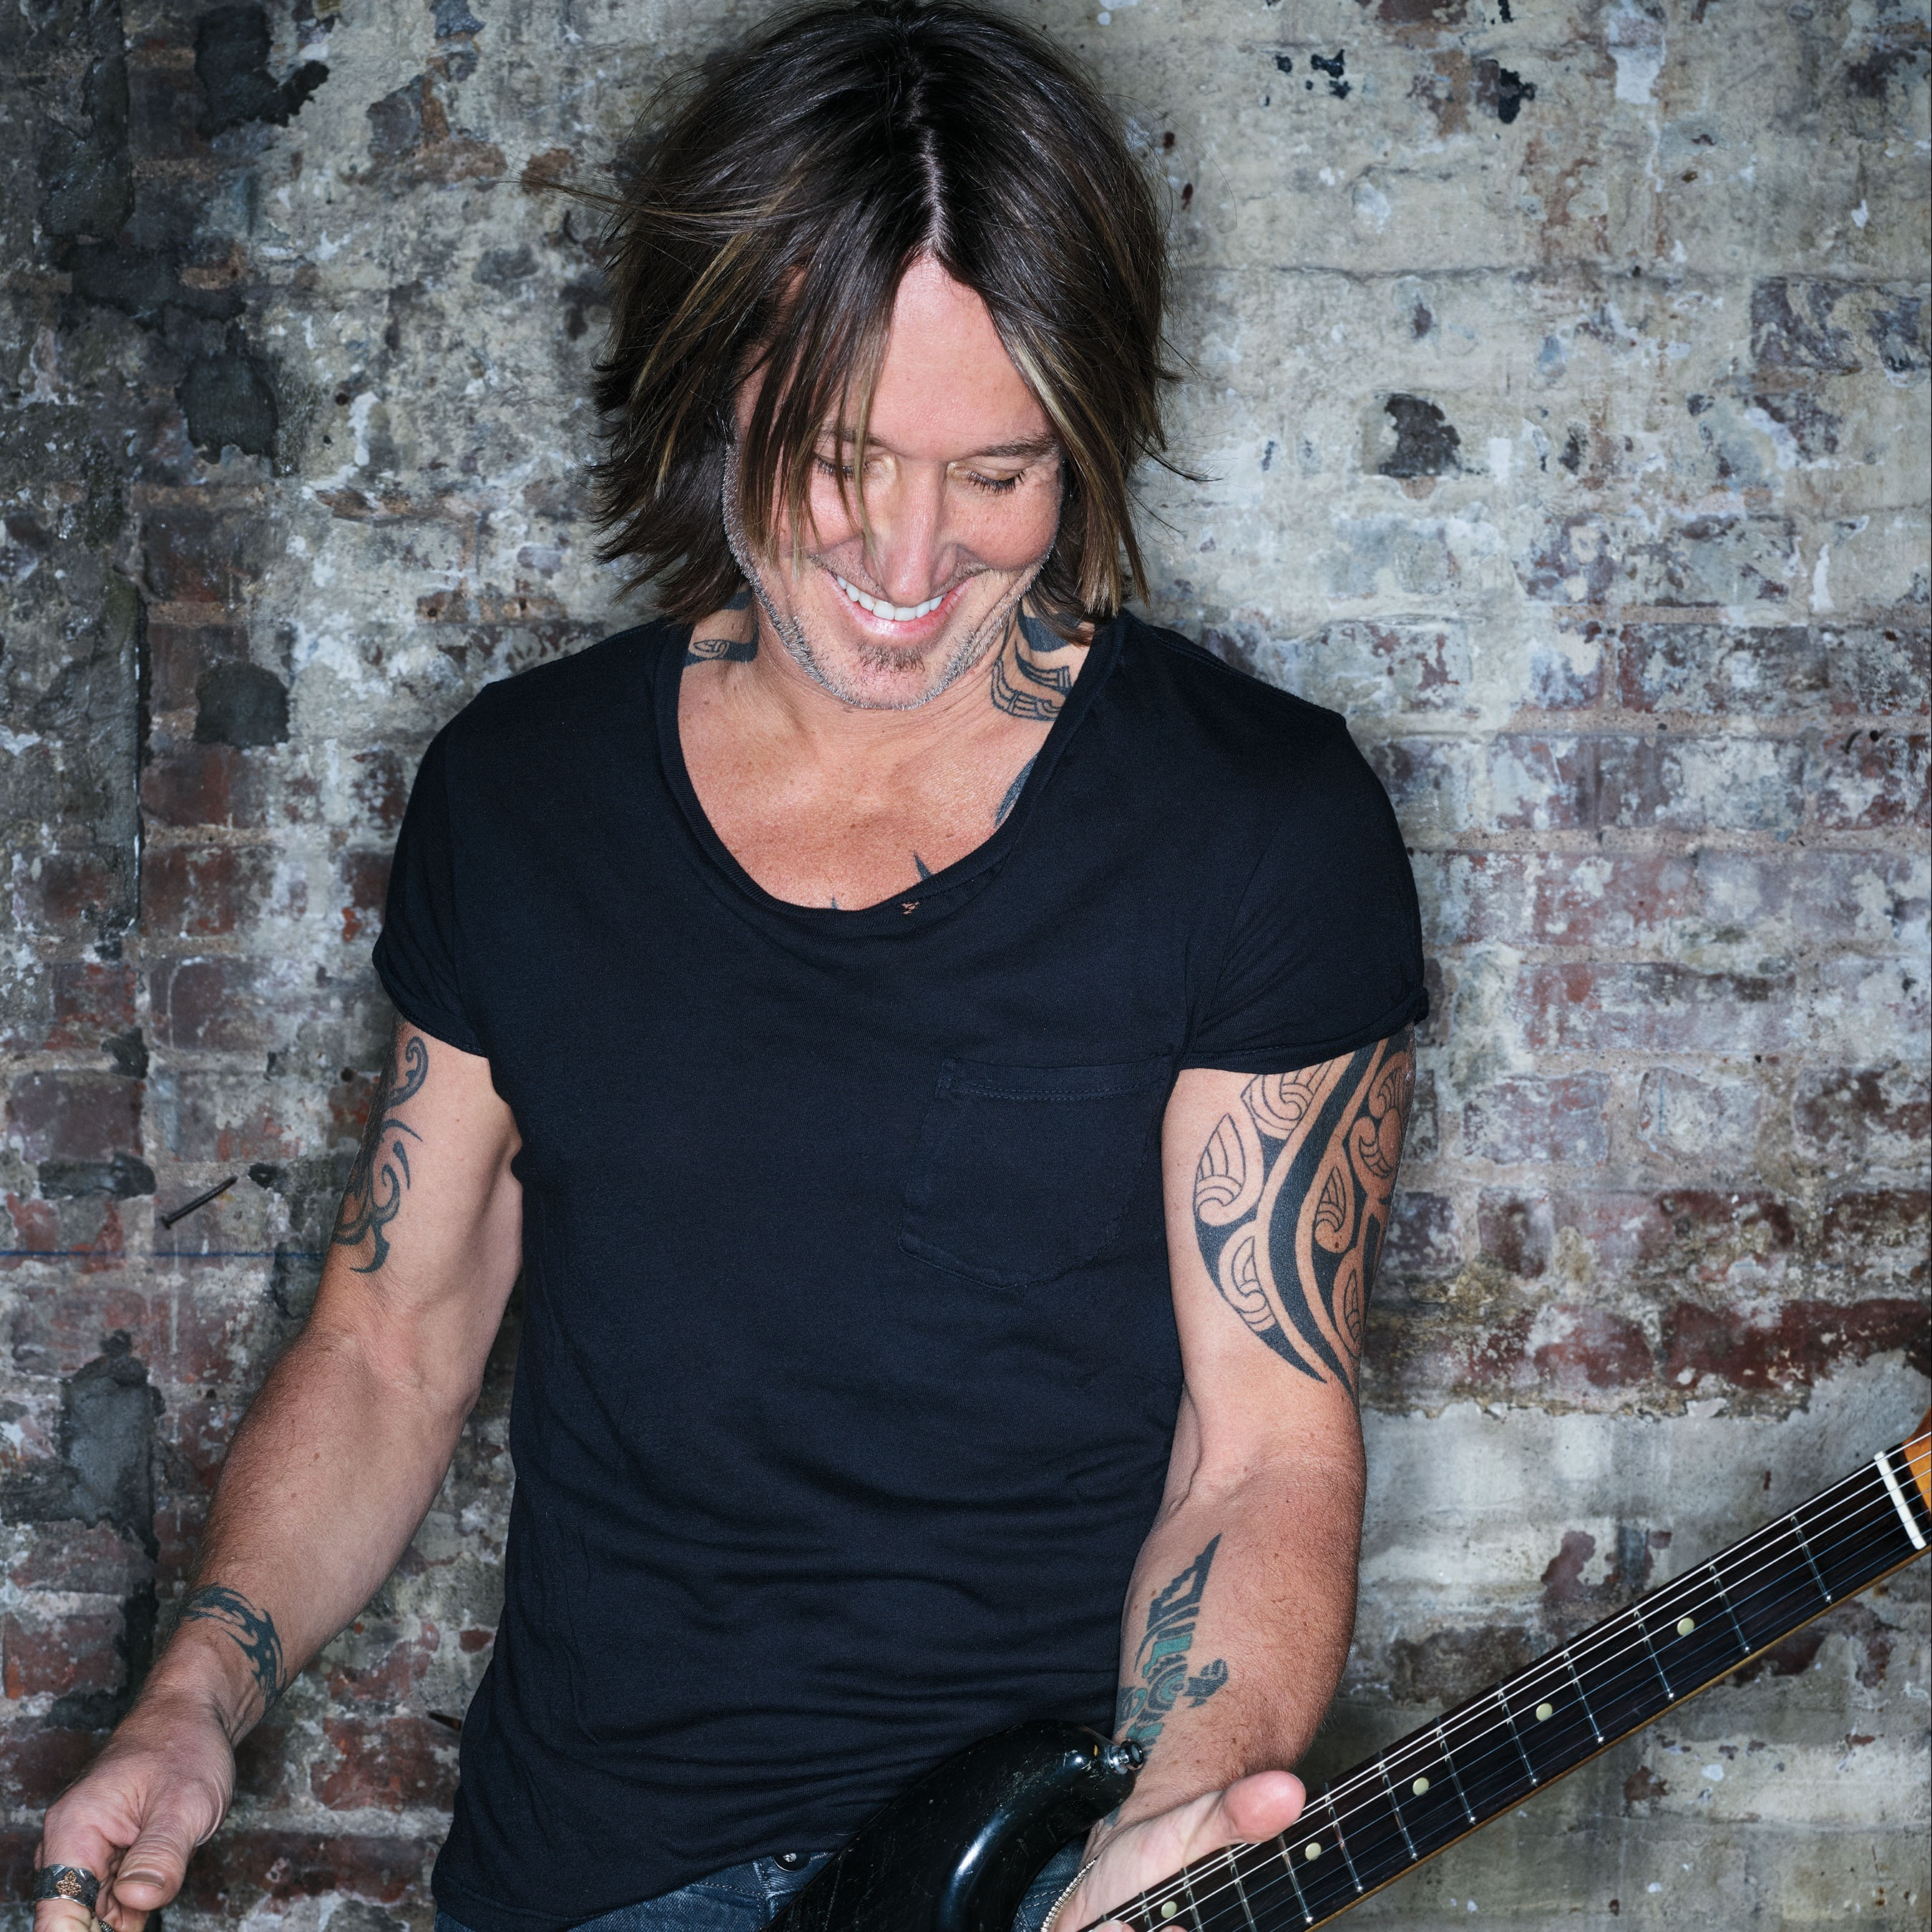 KEITH URBAN REVEALS TRACK LIST FOR HIS UPCOMING ALBUM, THE SPEED OF NOW PART 1.